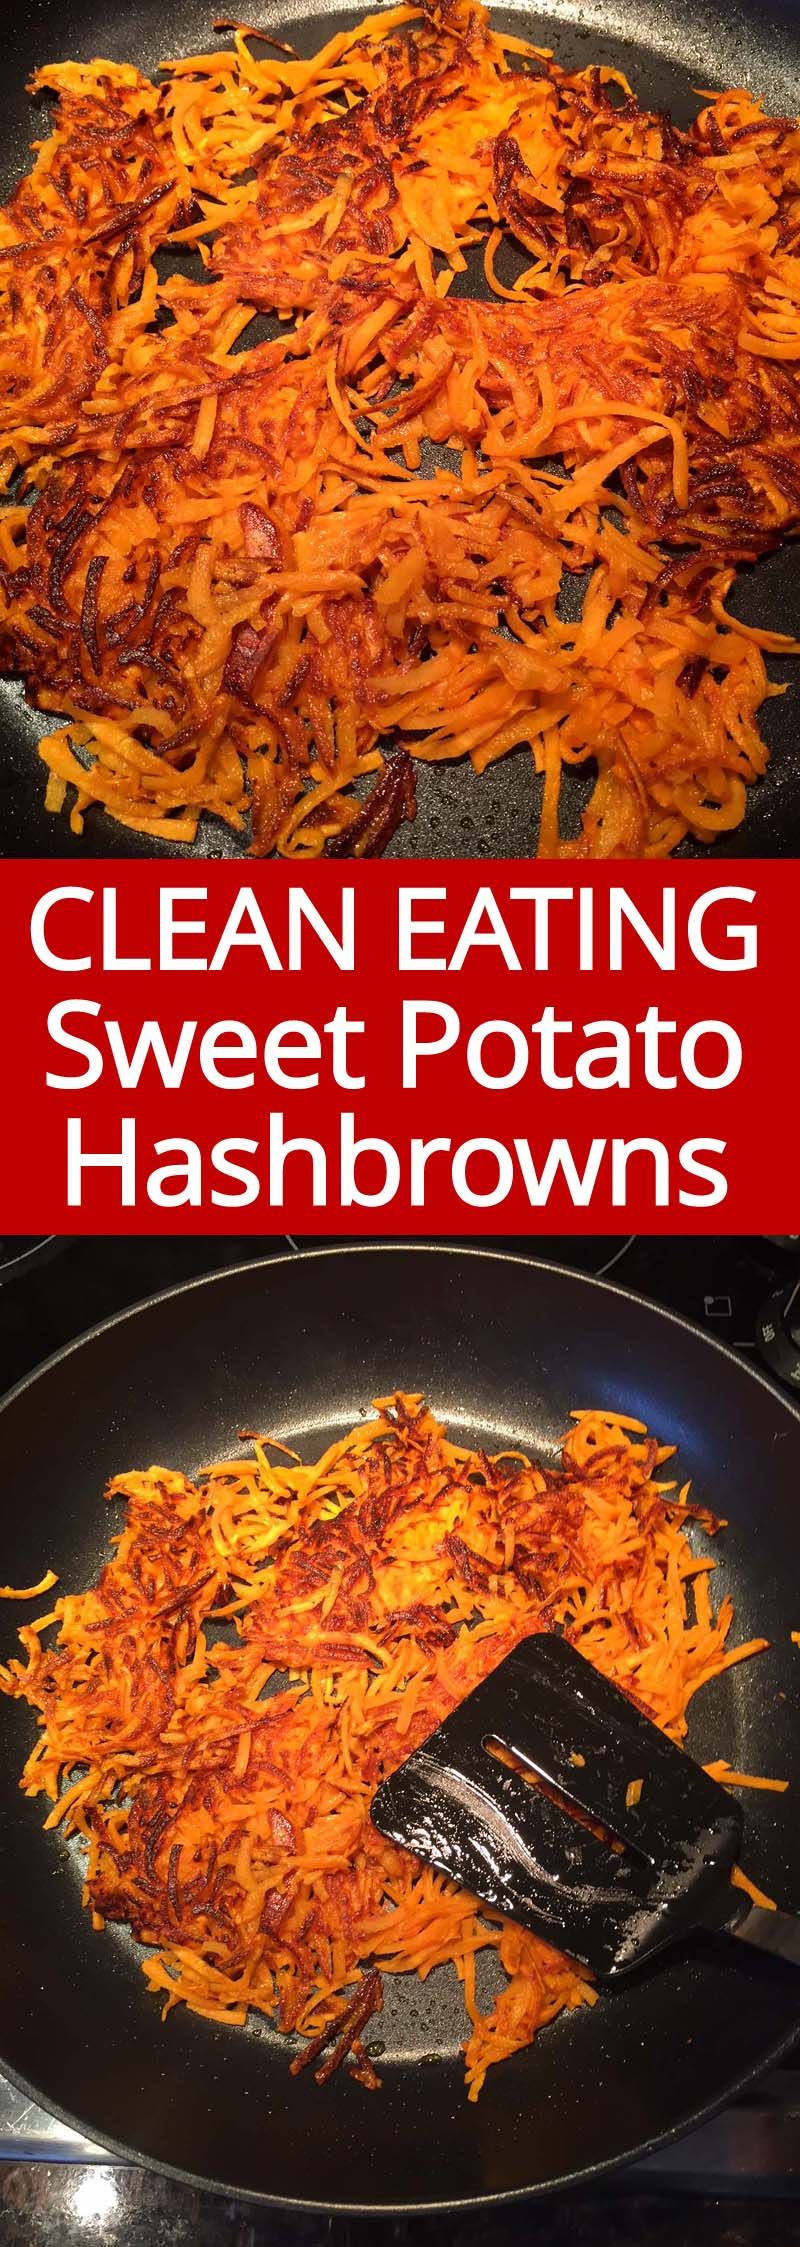 These homemade sweet potato hashbrowns are amazing! So yummy and much healthier than regular hashbrowns!